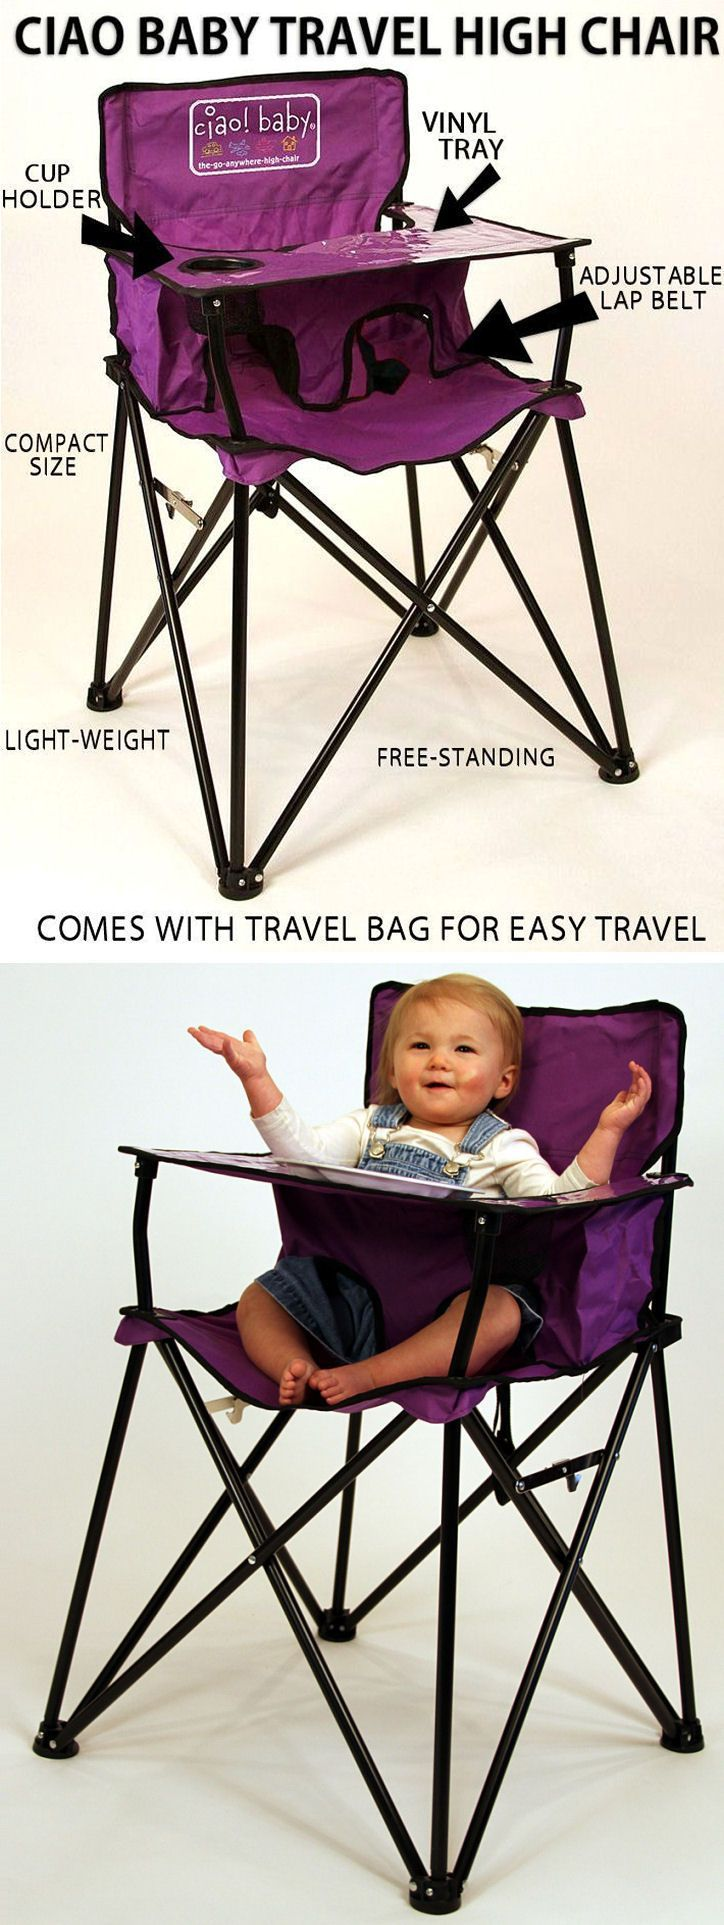 Portable Baby High Chair   Folds Up For Easy Travel. Great For Park, Camping, Restaurants & etc